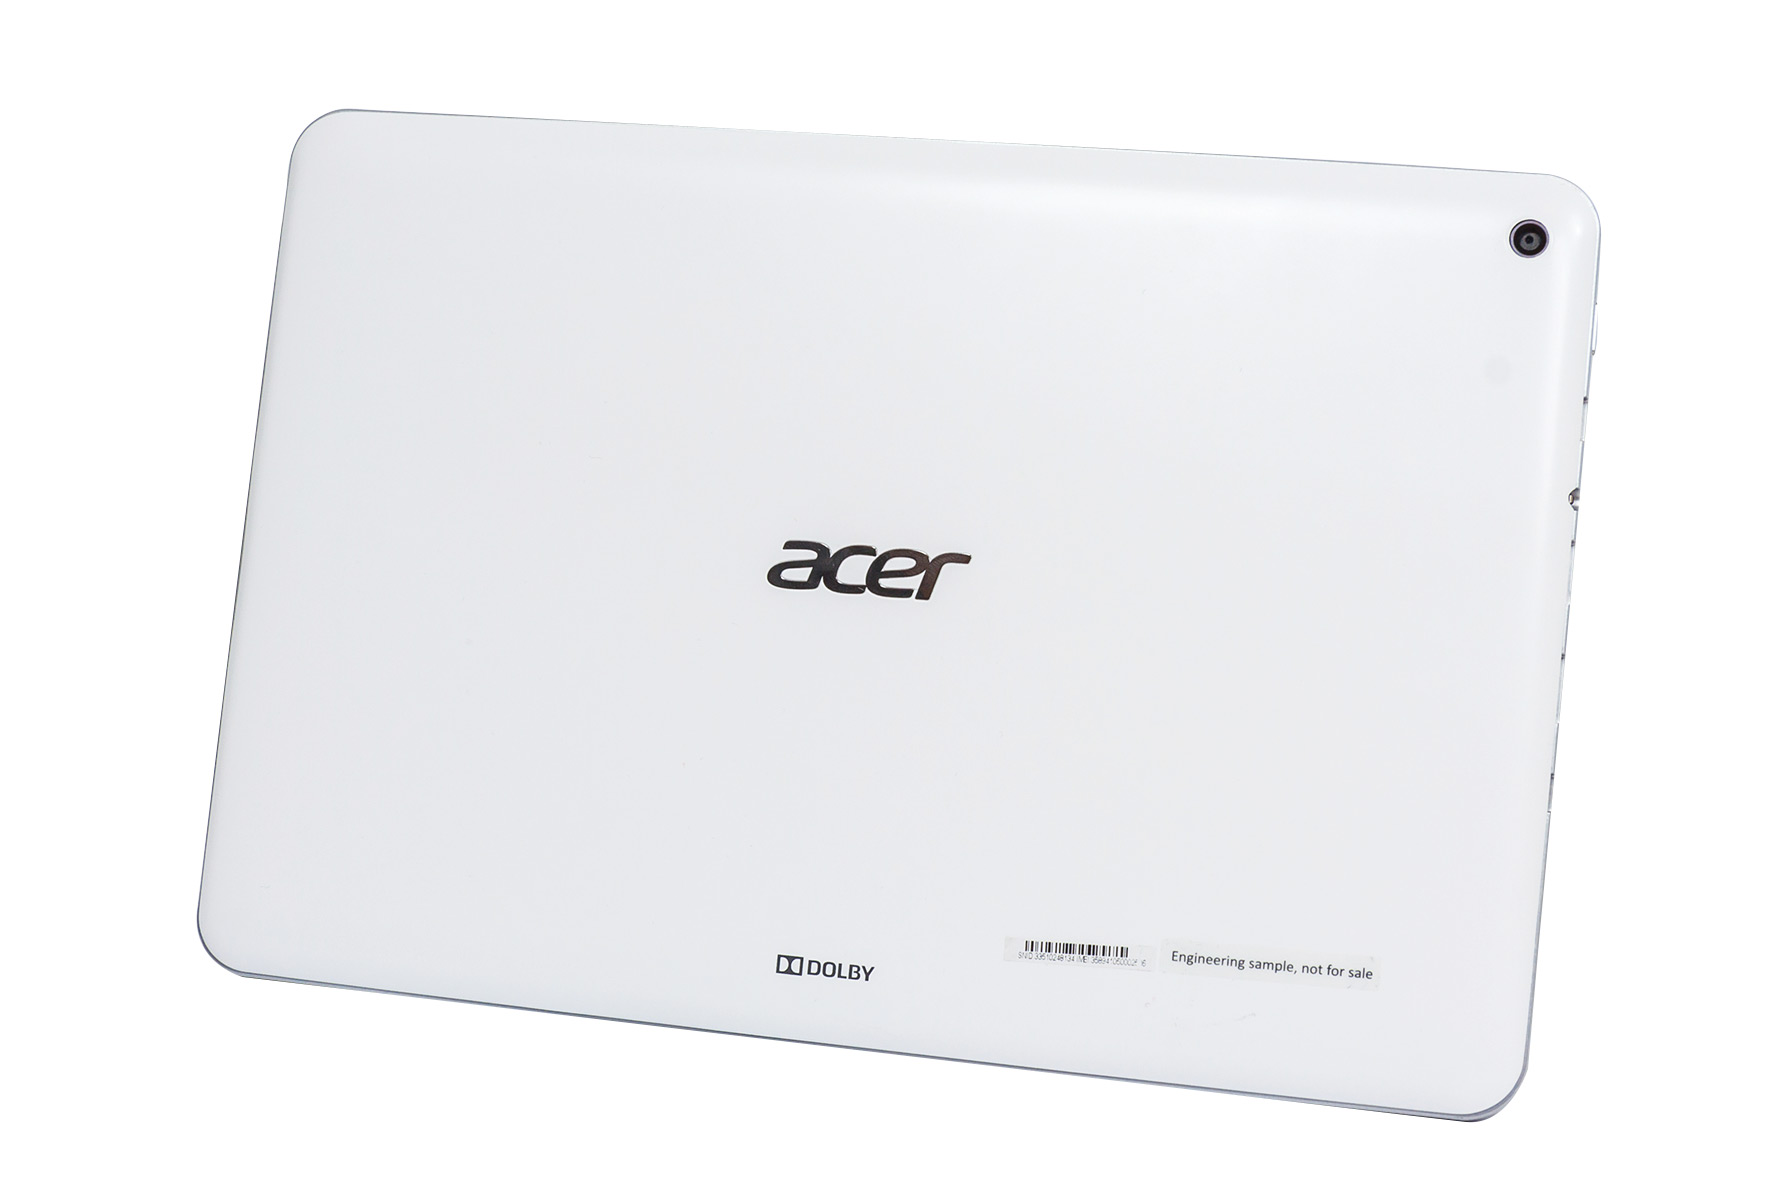 Acer Iconia A3A11 2